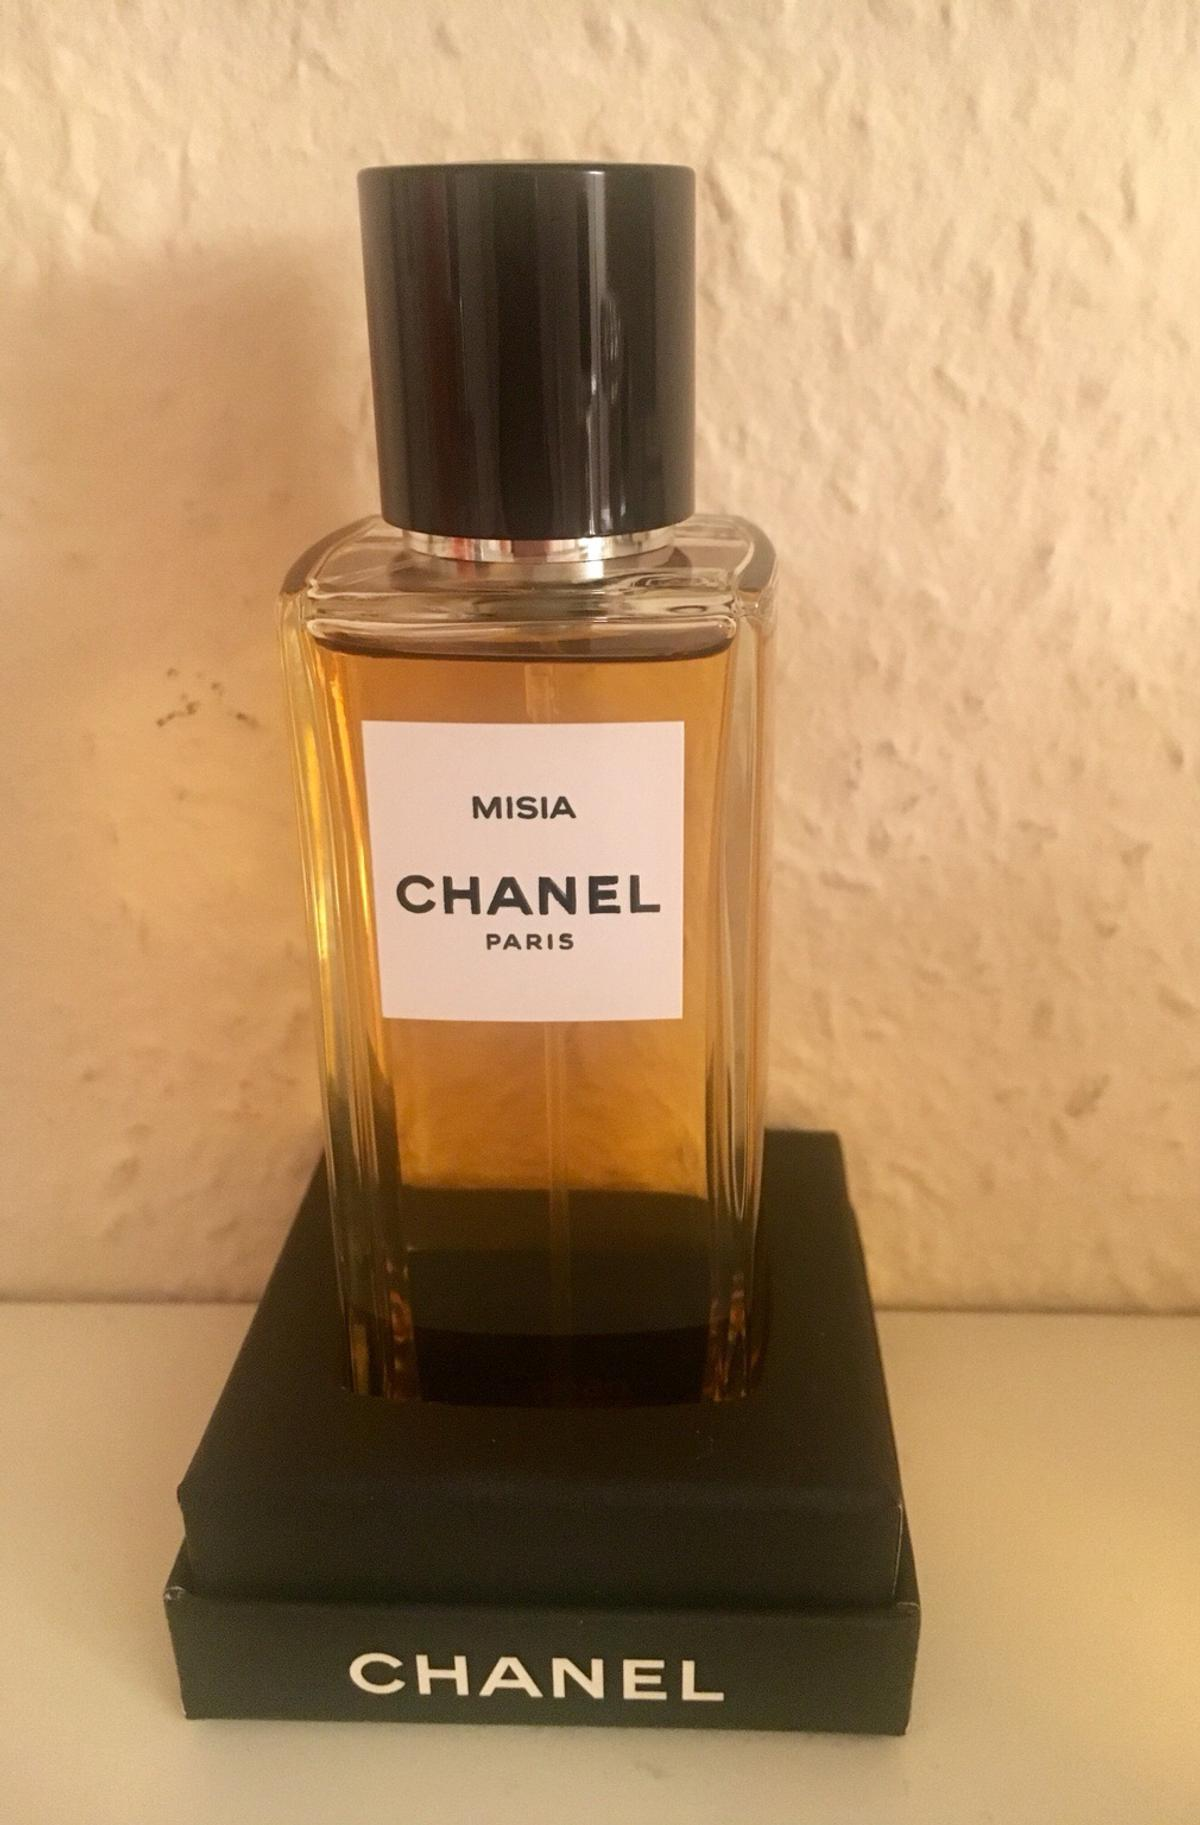 Perfume Chanel Misia In W2 Westminster For 4000 For Sale Shpock